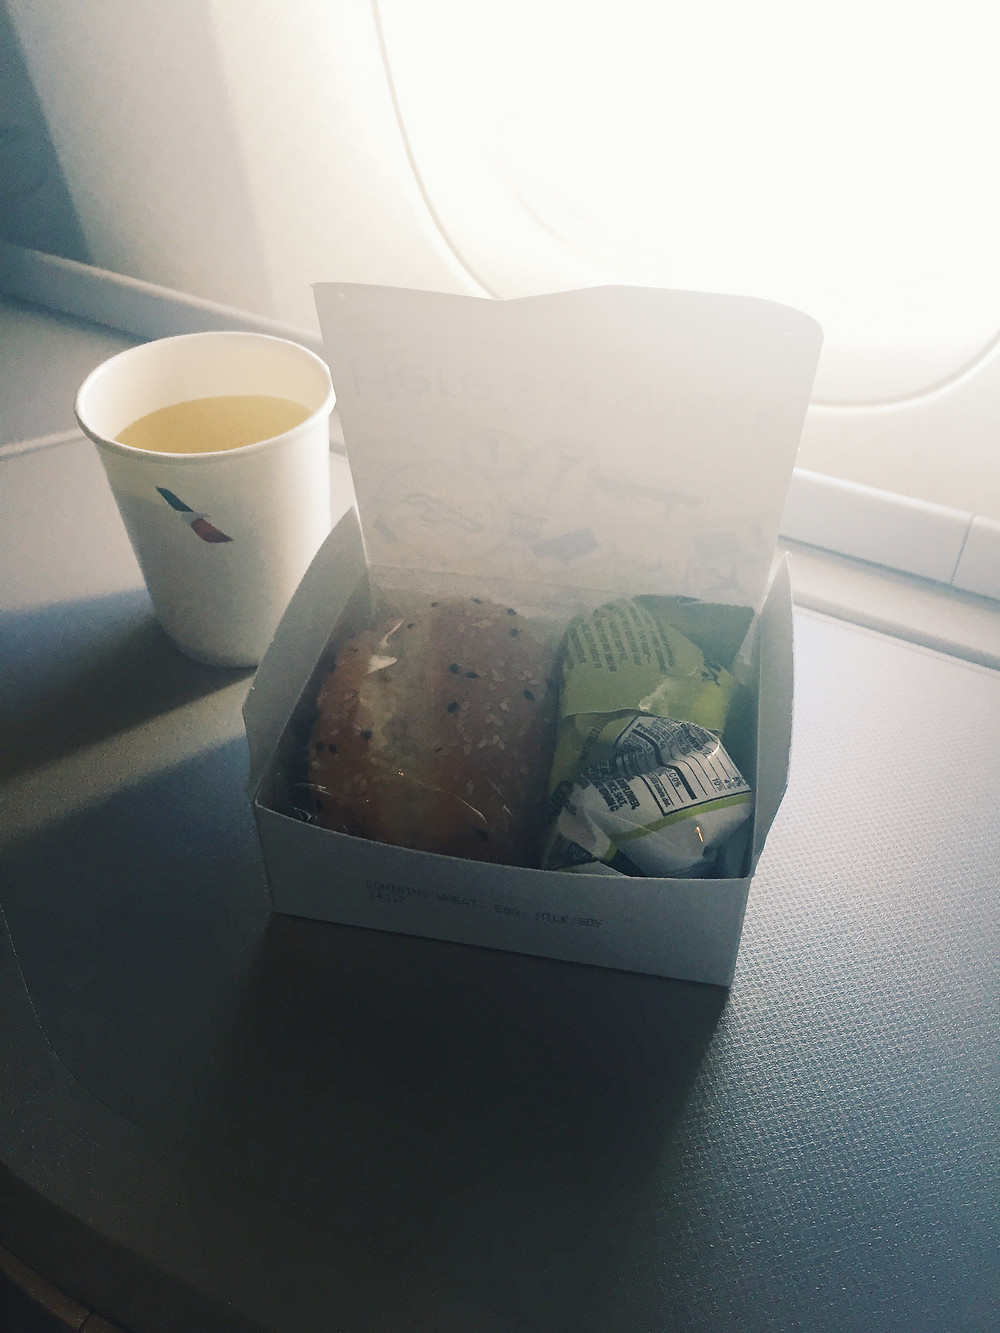 American Airlines Business Class, Boxed Sandwiches